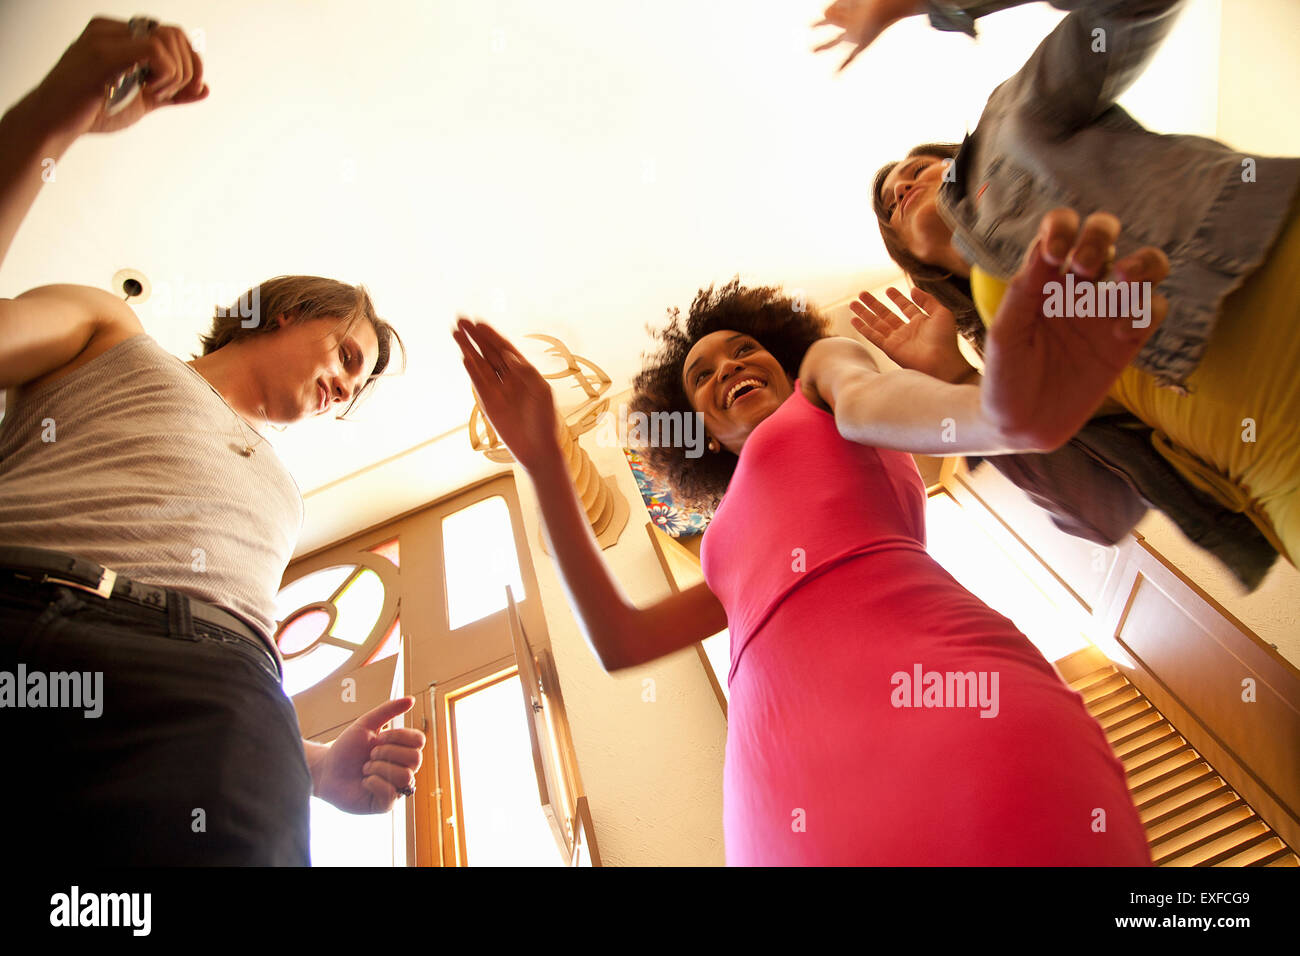 Students dancing, view from below - Stock Image